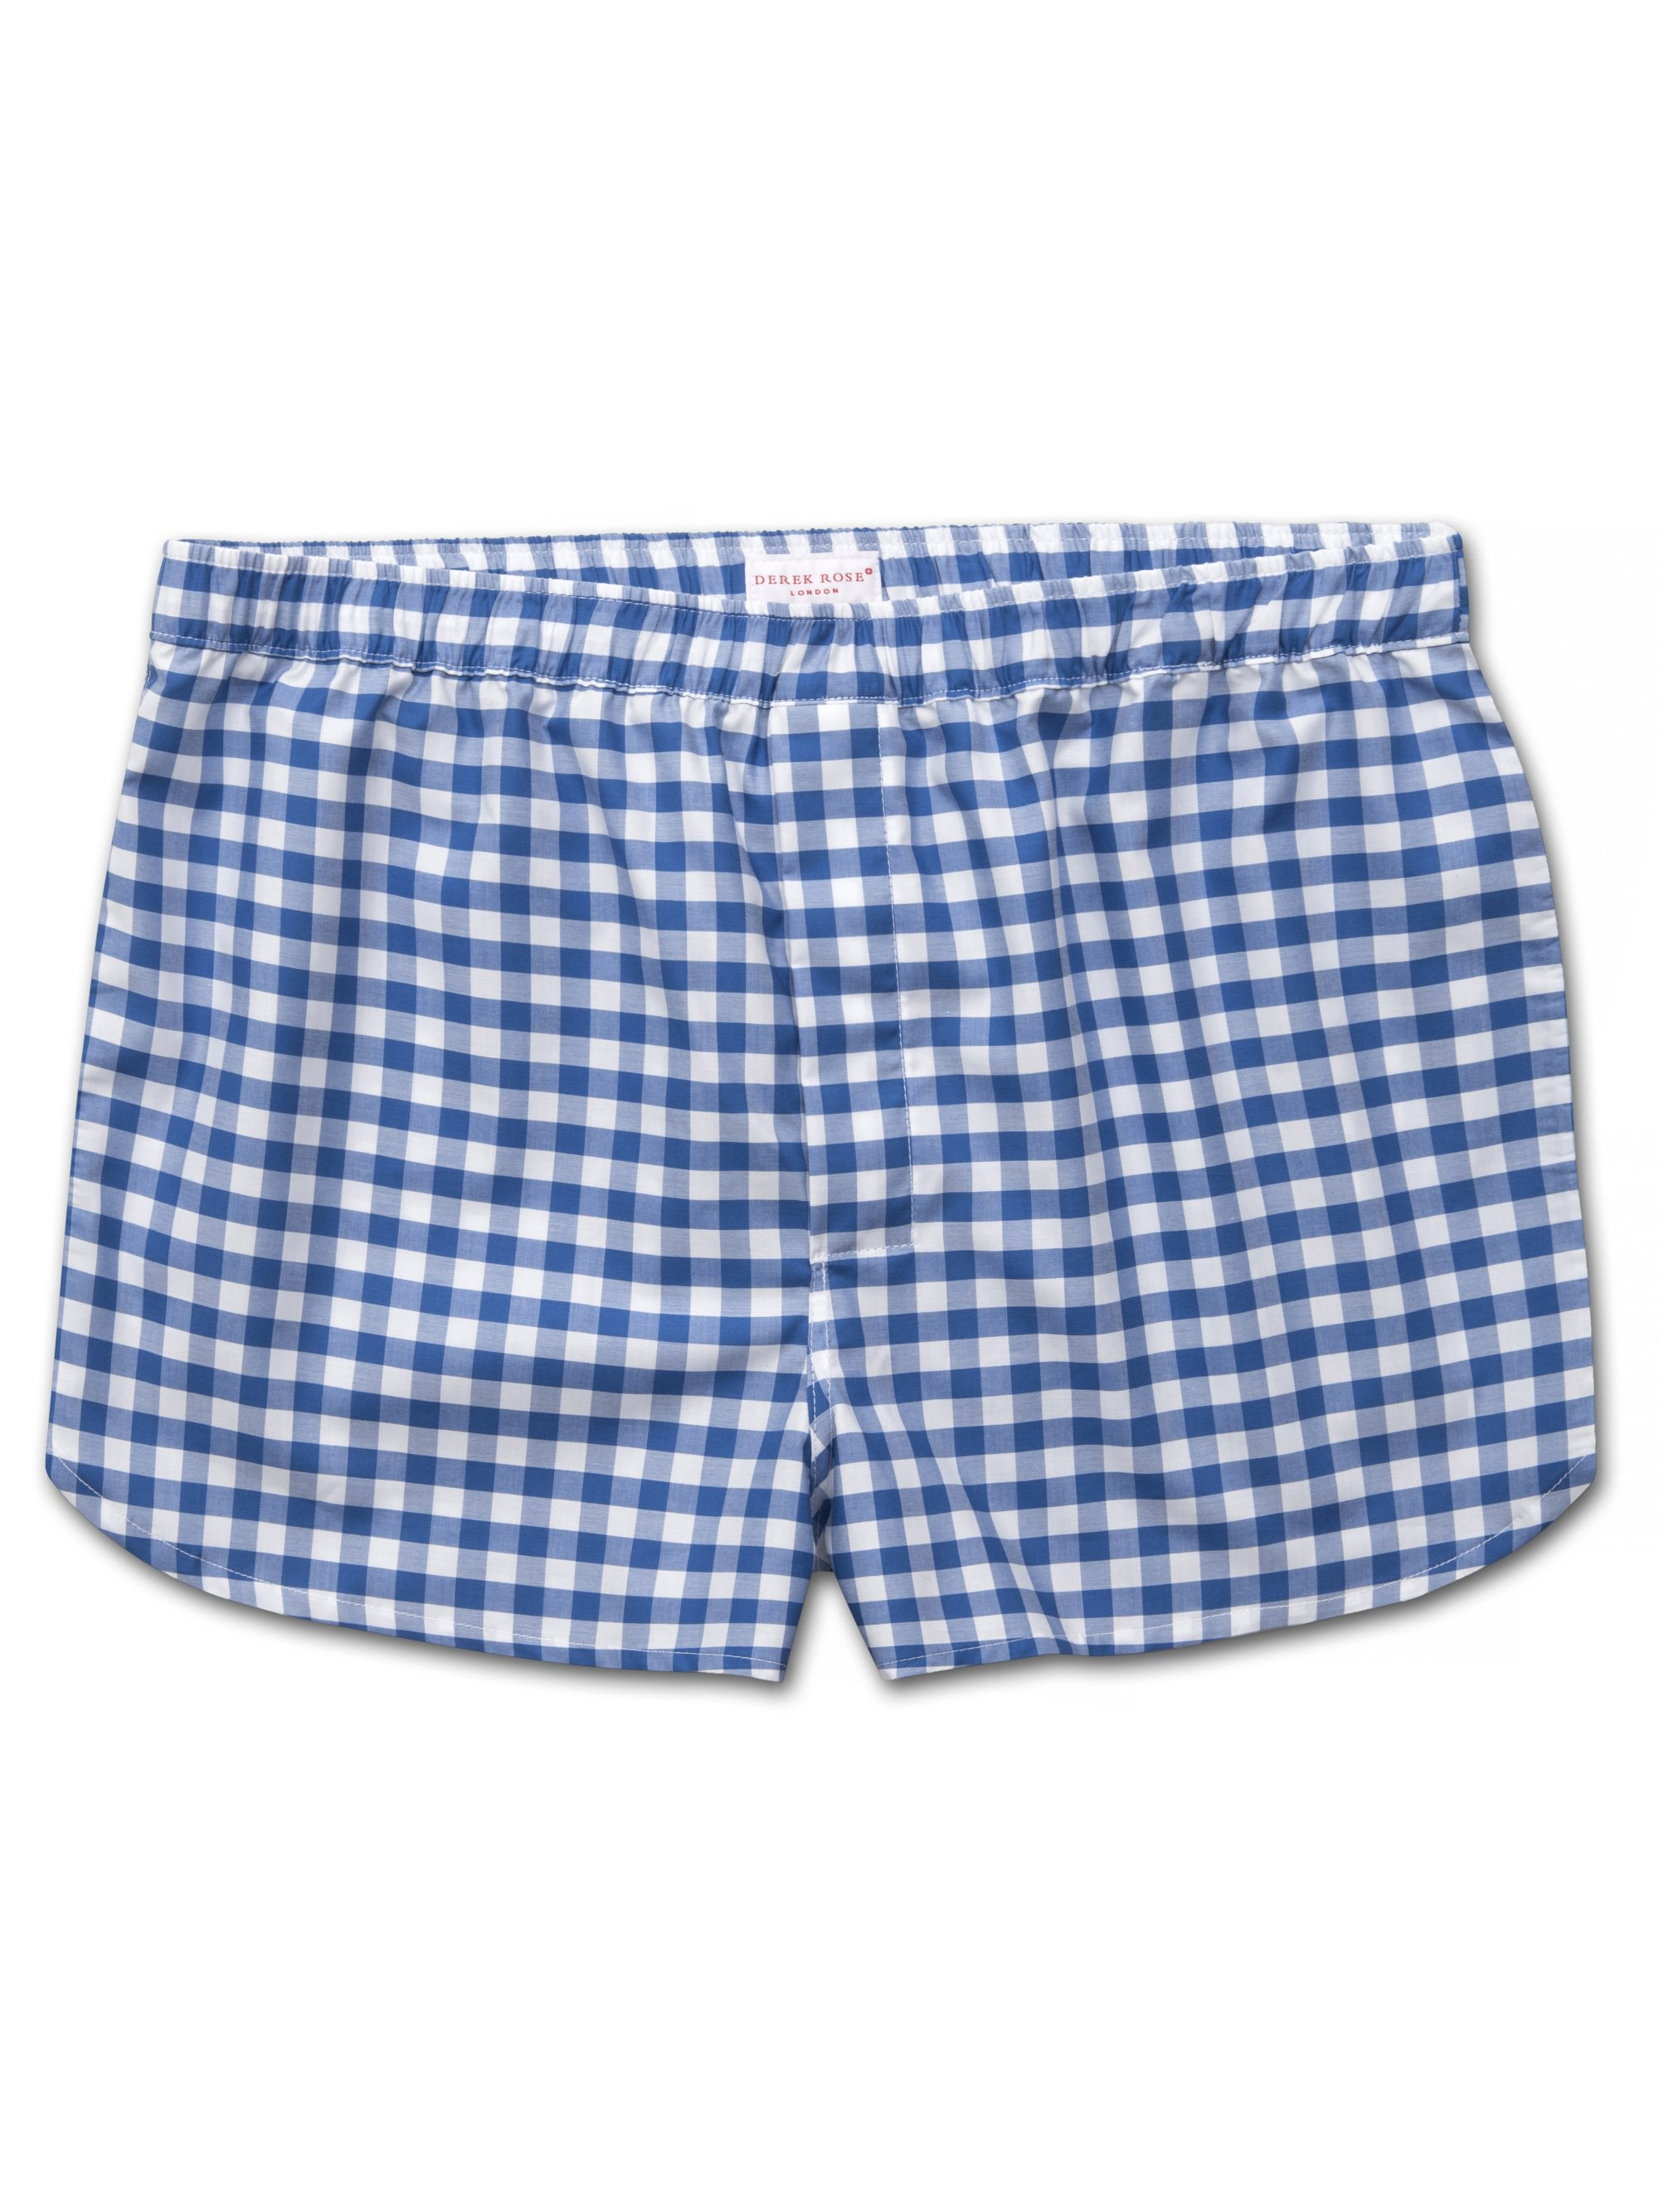 Men's Modern Fit Boxer Shorts Barker 26 Cotton Check Blue